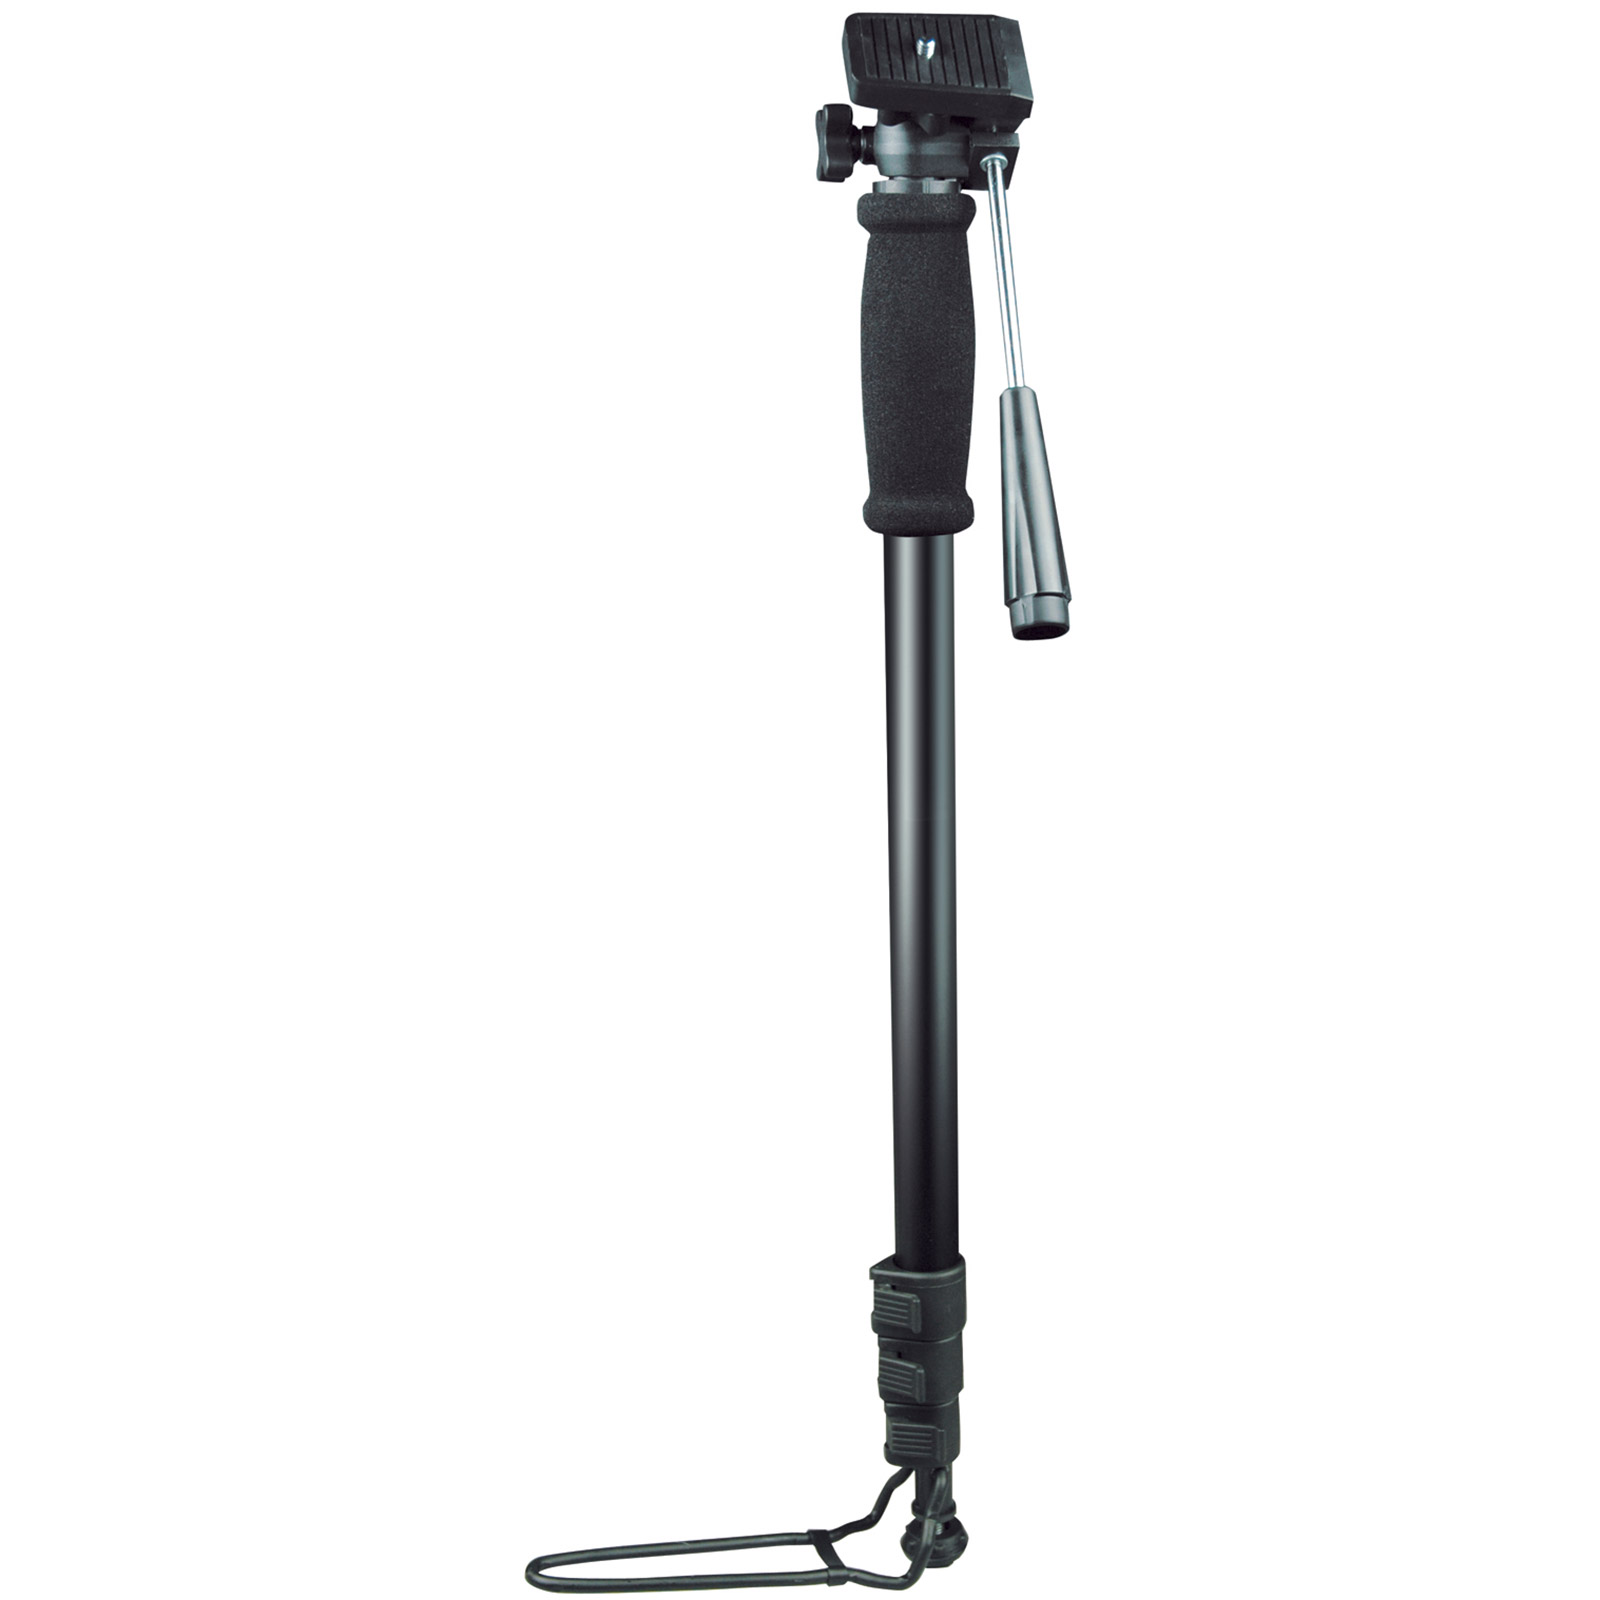 Digital & Film Camera MonoPod with Foot Rest - Mono Pod - 4 Section - UK